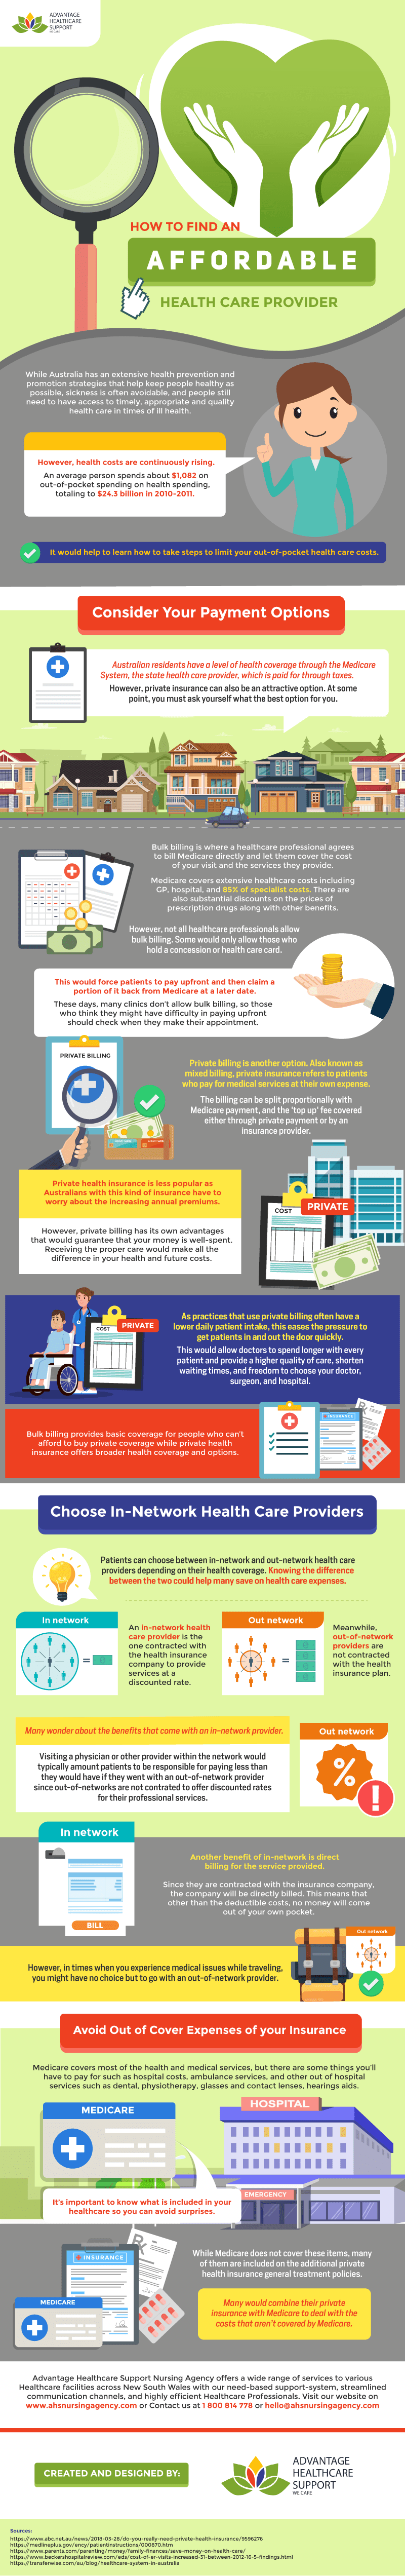 How to Find an Affordable Health Care Provider - Infographic